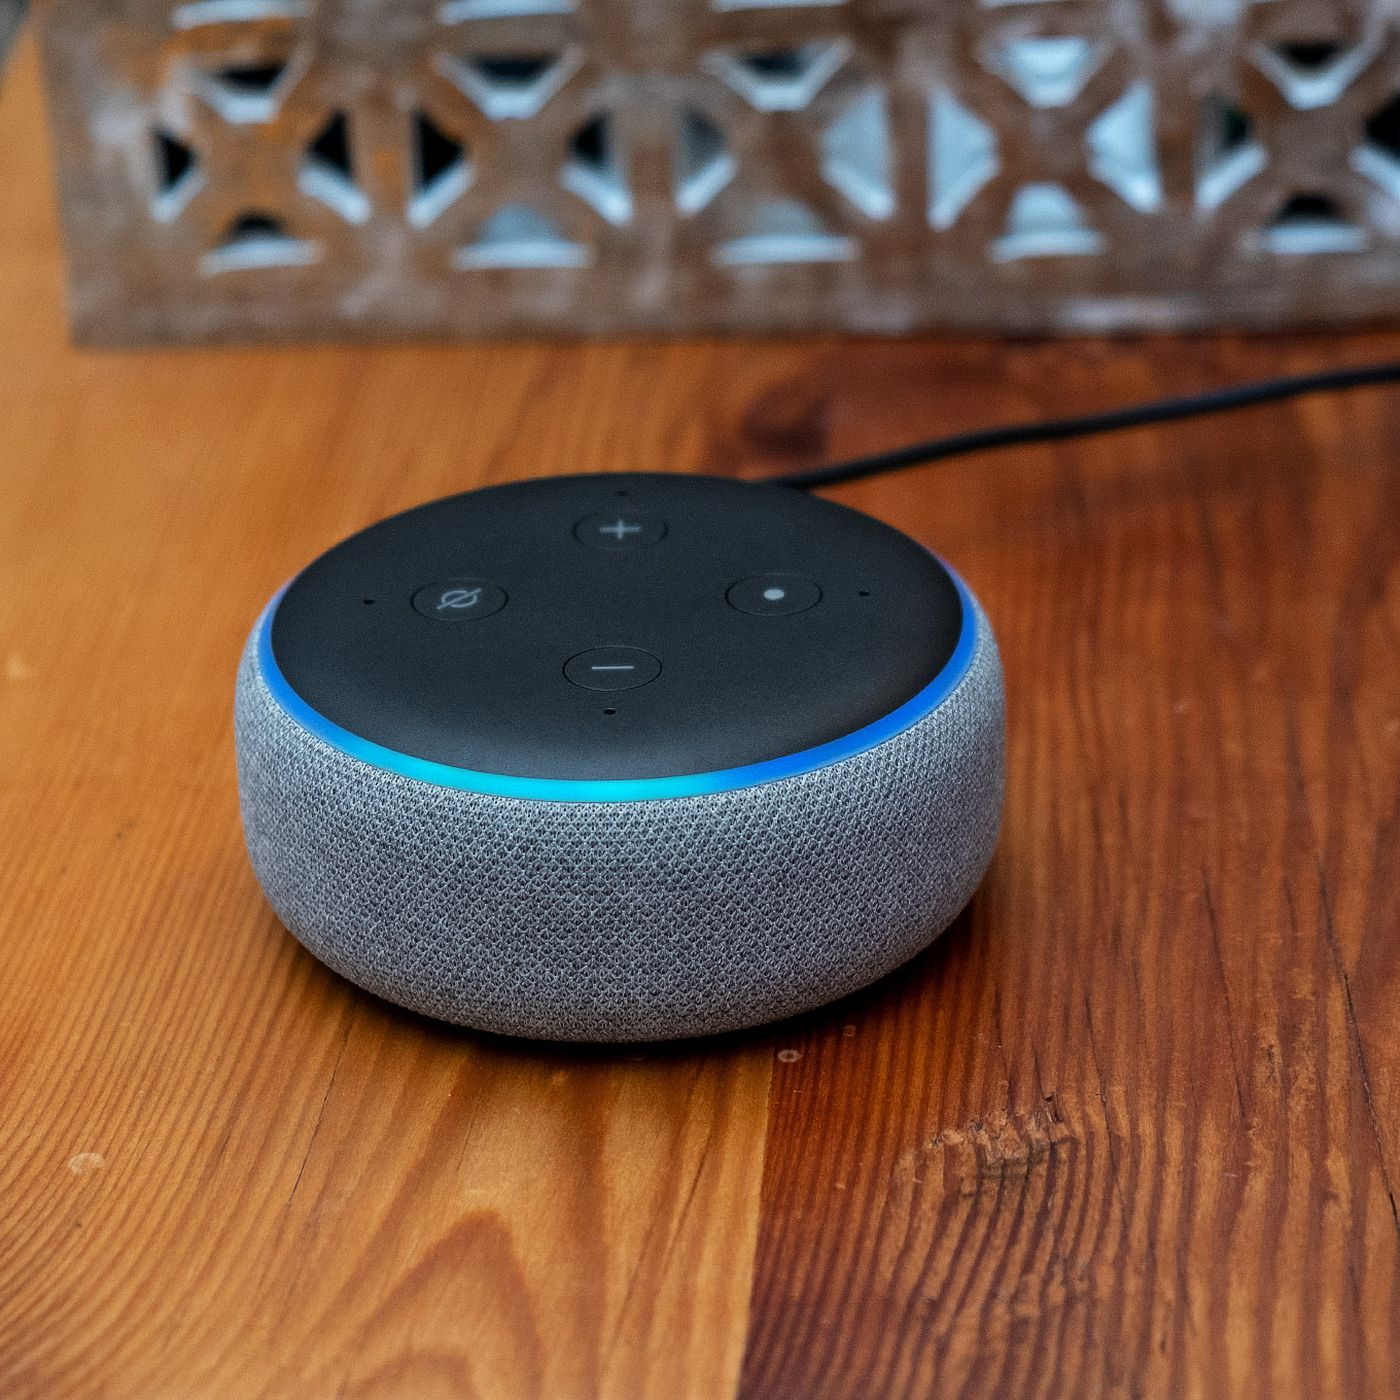 theverge.com - James Vincent - Alexa will soon be able to read the news just like a professional